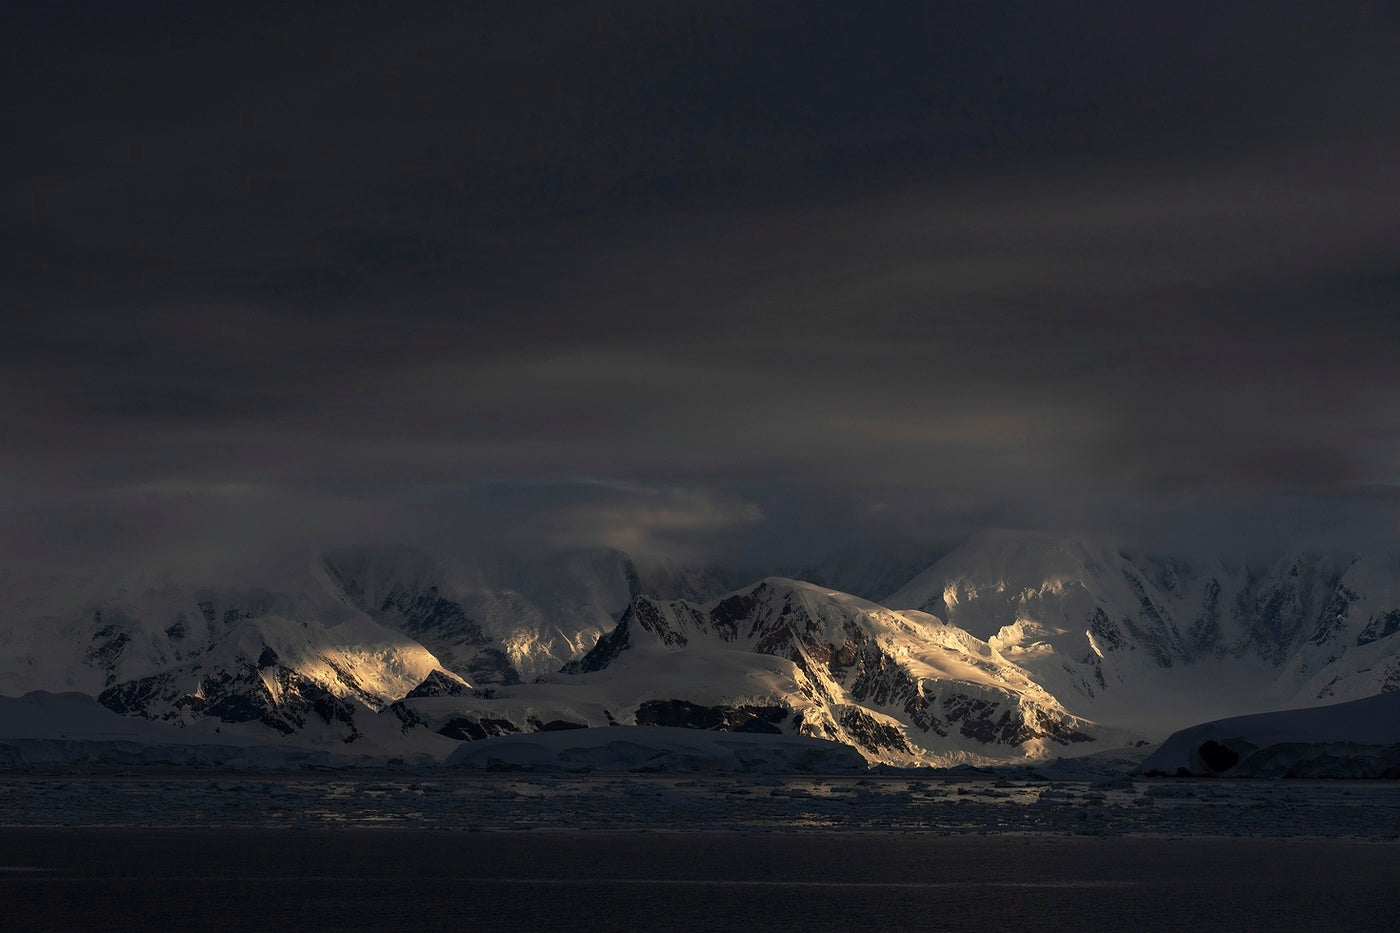 The continent of antarctica looking moody in the dawn light